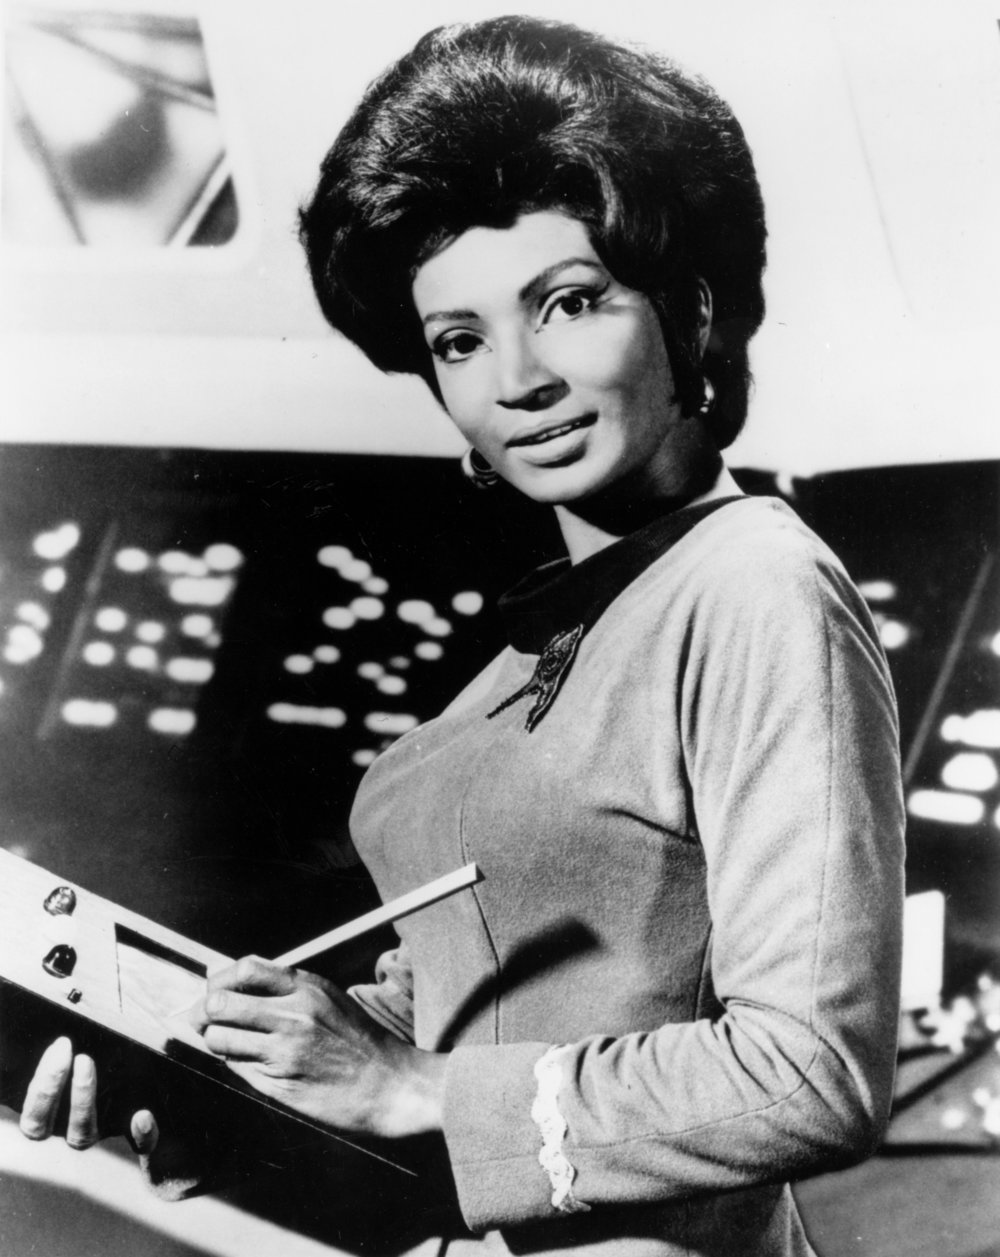 Nichelle Nichols as Uhura on the set of Star Trek: The Original Series By NASA (Great Images in NASA Description) [Public domain], via Wikimedia Commons